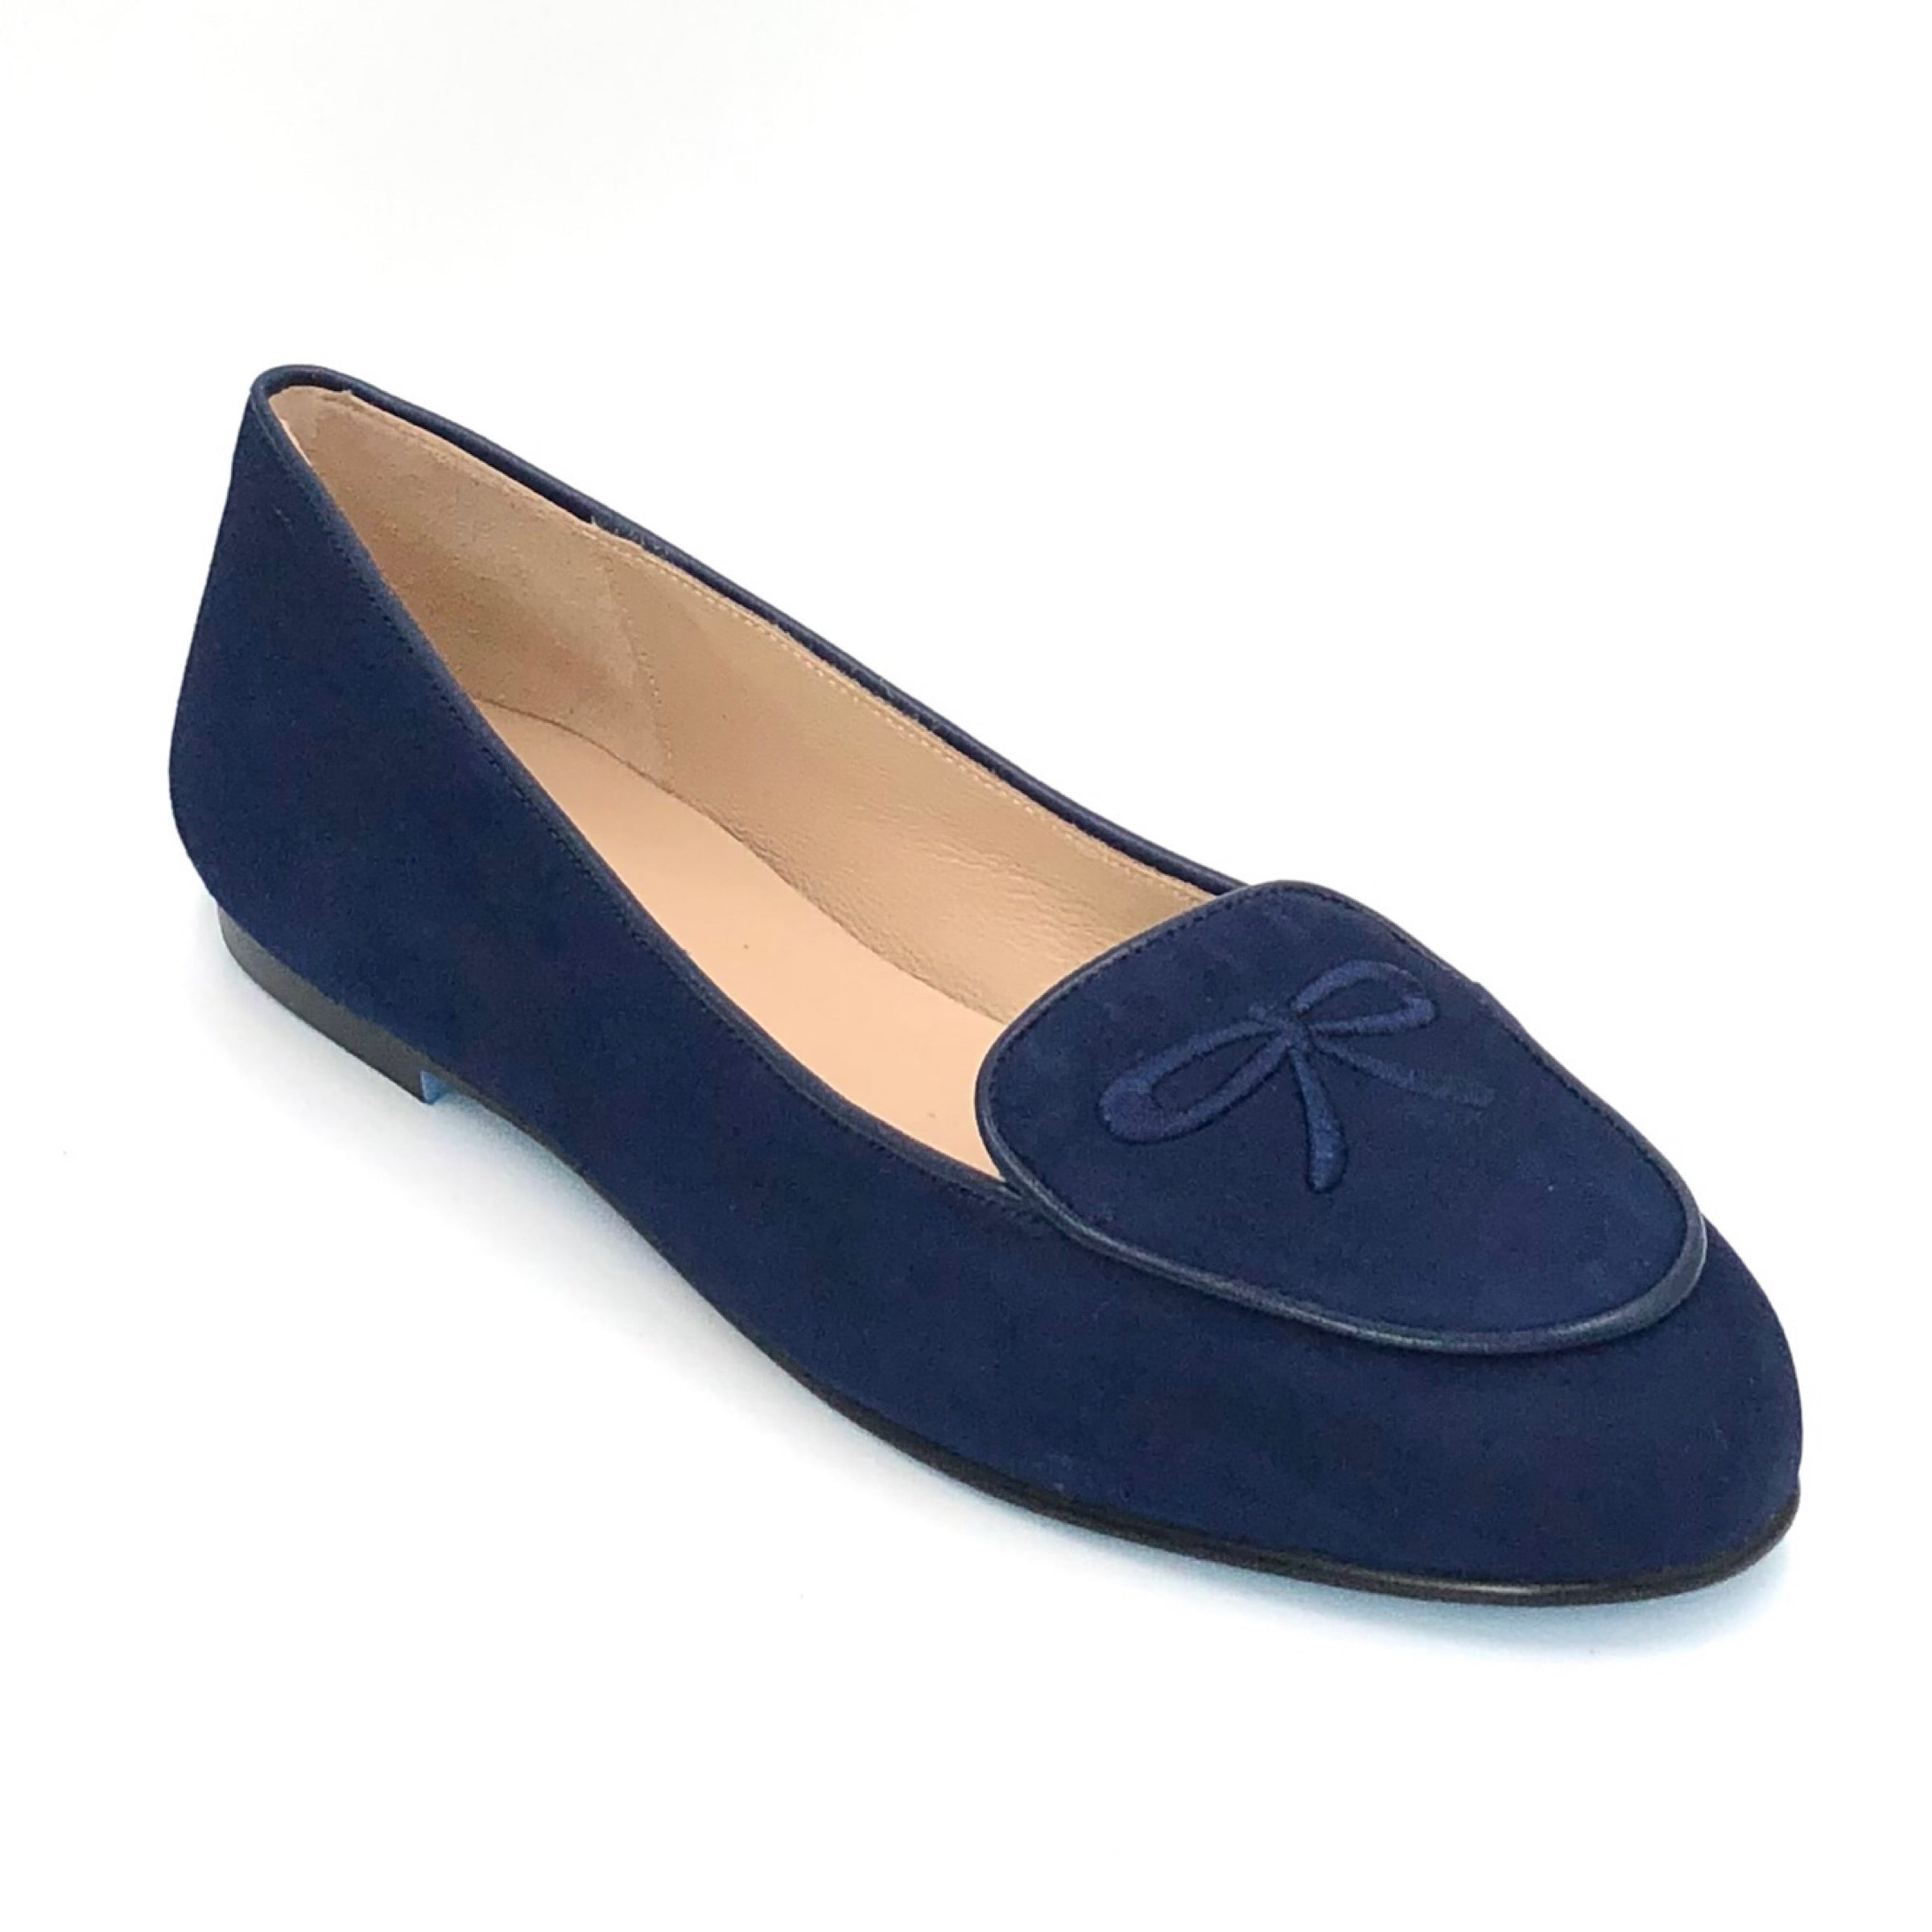 French Sole Madison - The Belgium Loafer in Navy. This French Sole x Nicky Hilton modern take on the classic Belgium loafer is both stylish & sophisticated. Suede upper with embroidery, leather lining & leather sole. Made in Spain.